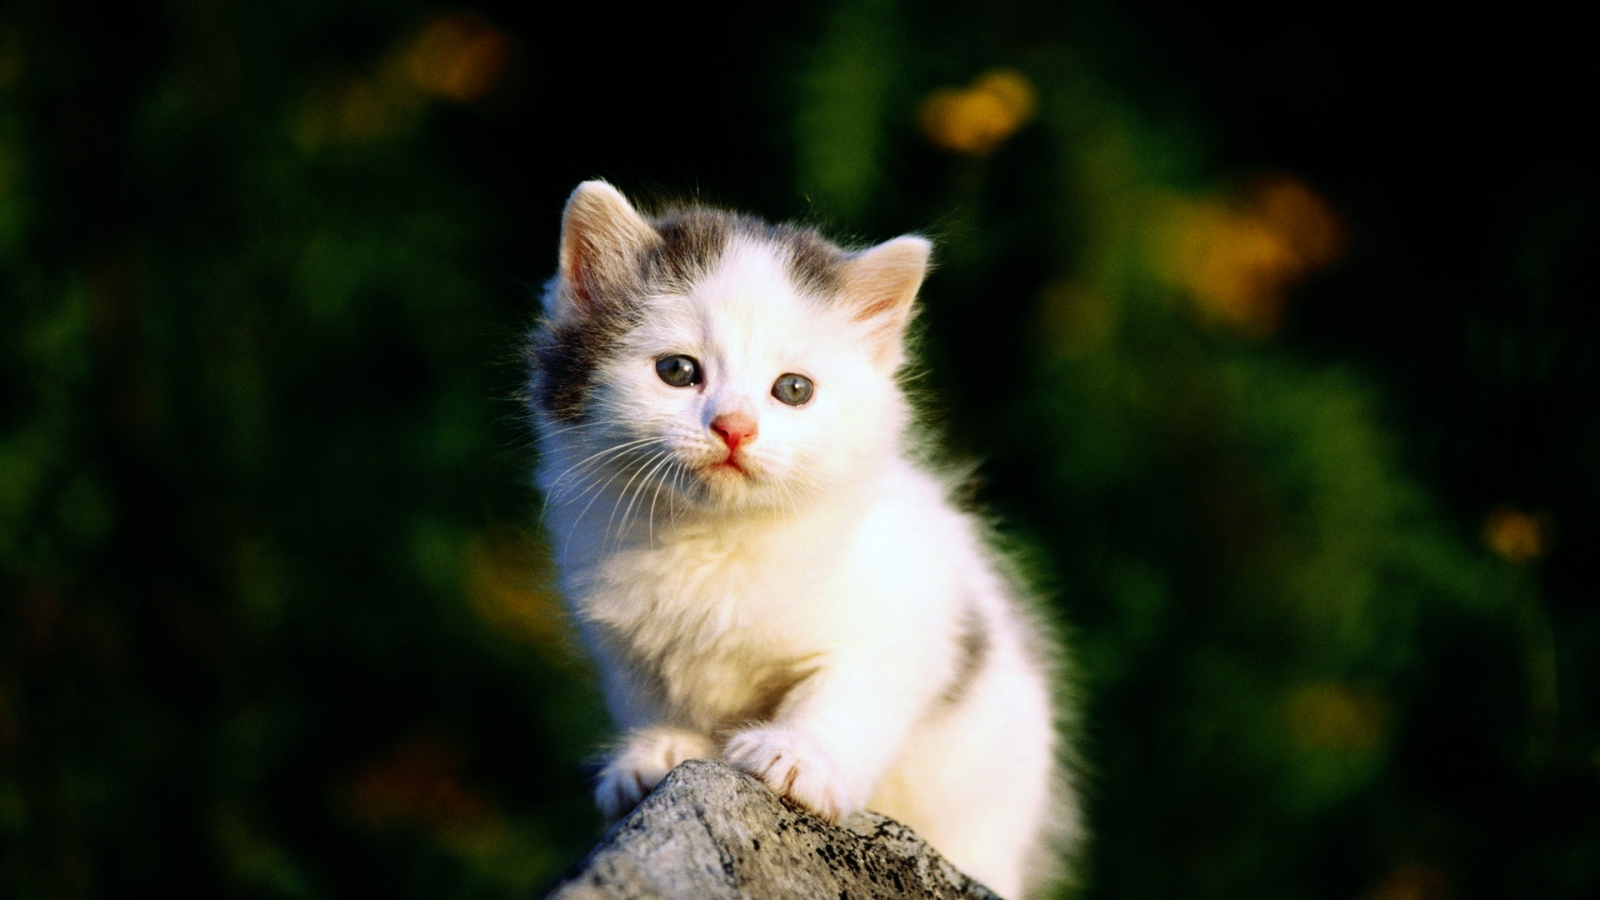 Free Download Beautiful Cute And Sweet Cat Wallpapers Are Waiting For Your To 1920x1080 For Your Desktop Mobile Tablet Explore 77 Cat Backgrounds Kitten Desktop Wallpaper Cute Cats Wallpaper